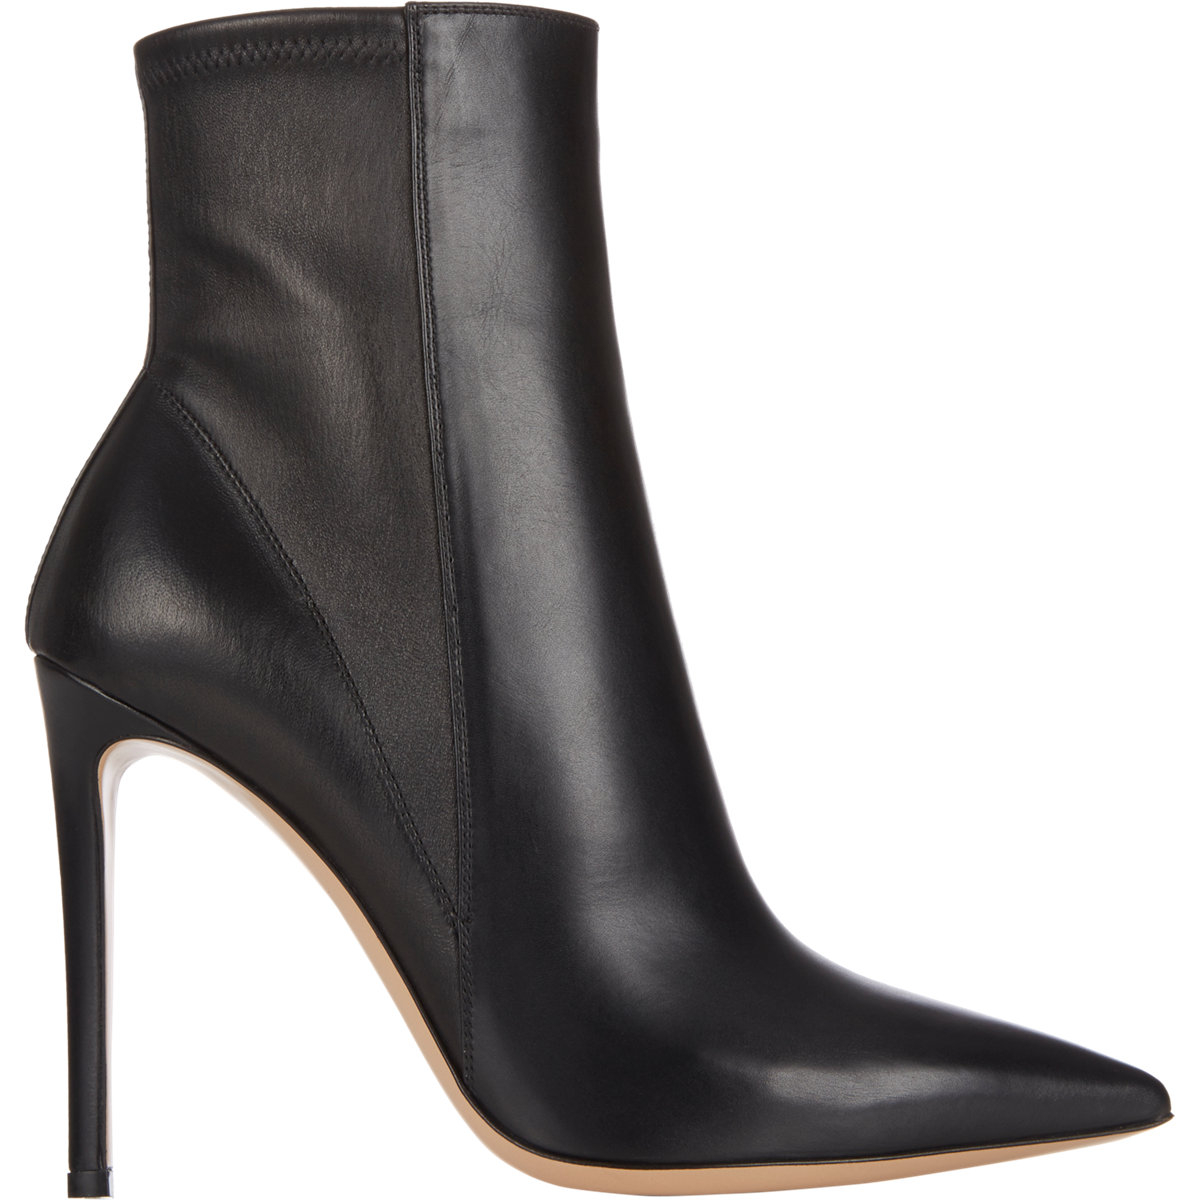 Sergio Rossi Stretch Leather Ankle Boots free shipping pay with paypal in China 2015 new cheap price with paypal cheap online free shipping 2015 zAWEgVgu